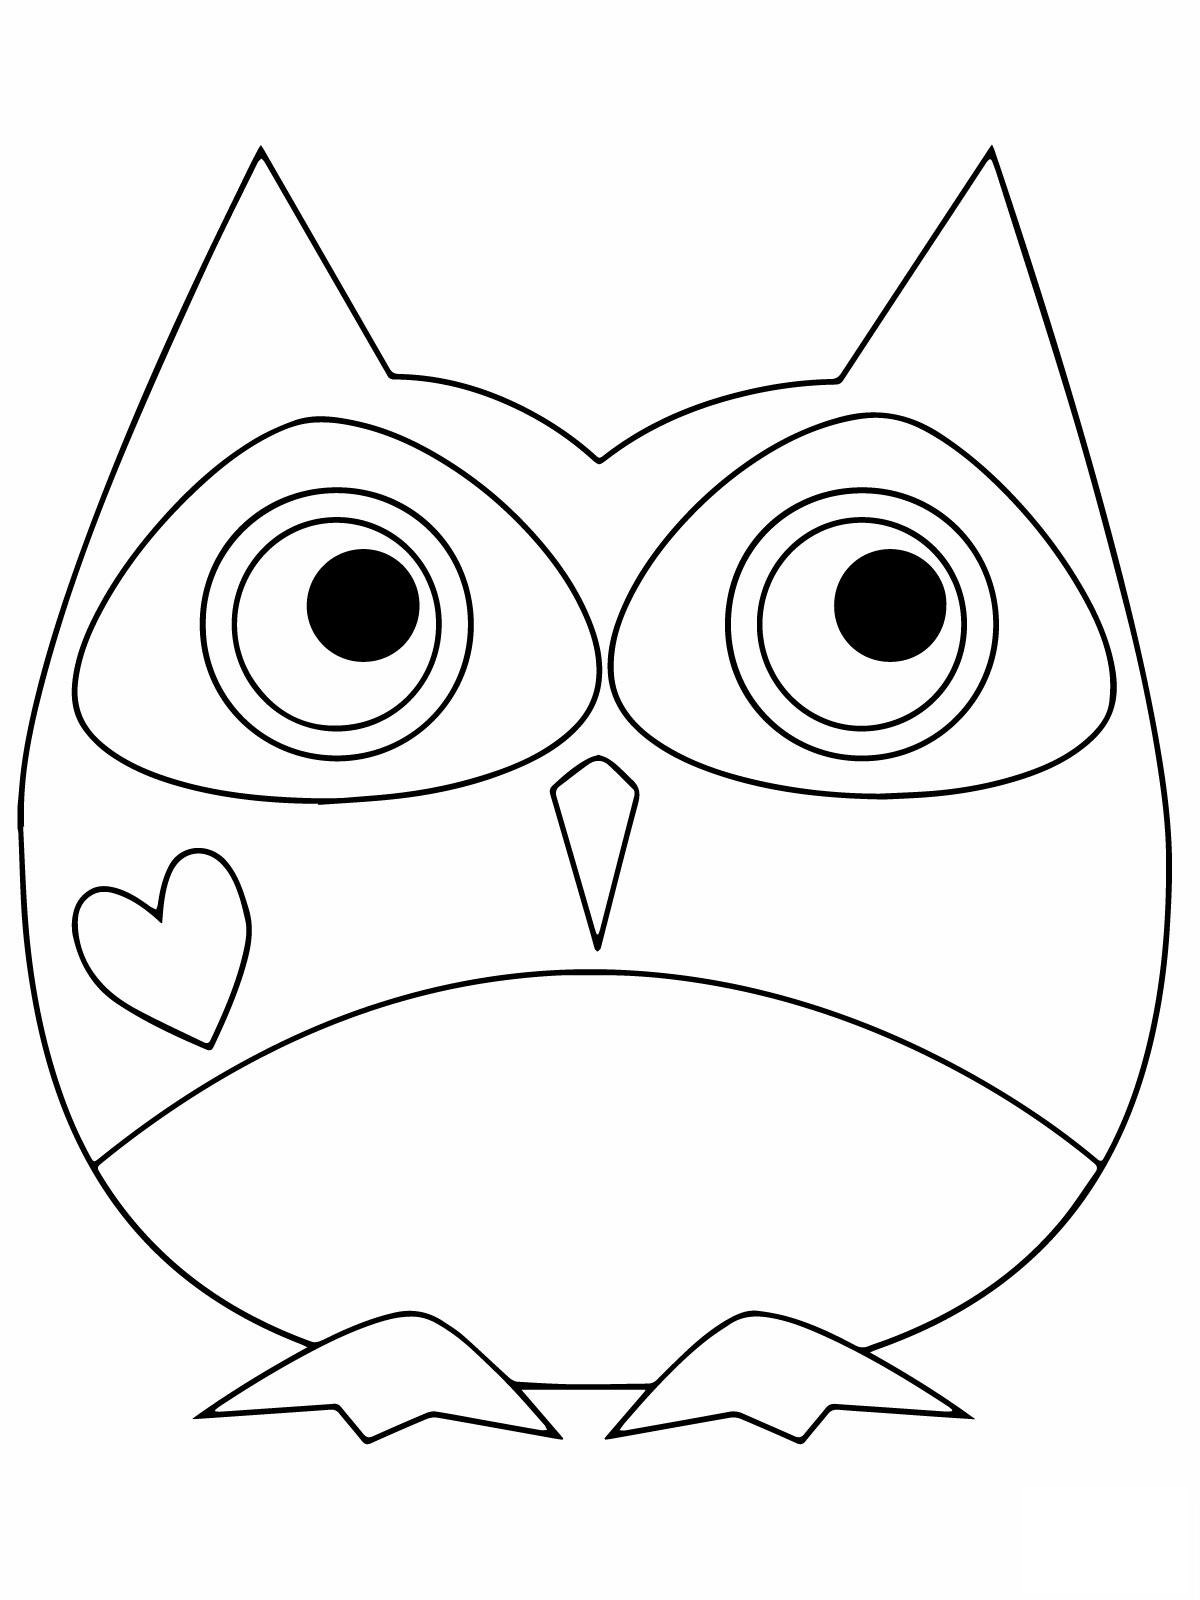 coloring pages owls owl coloring pages kidsuki pages coloring owls